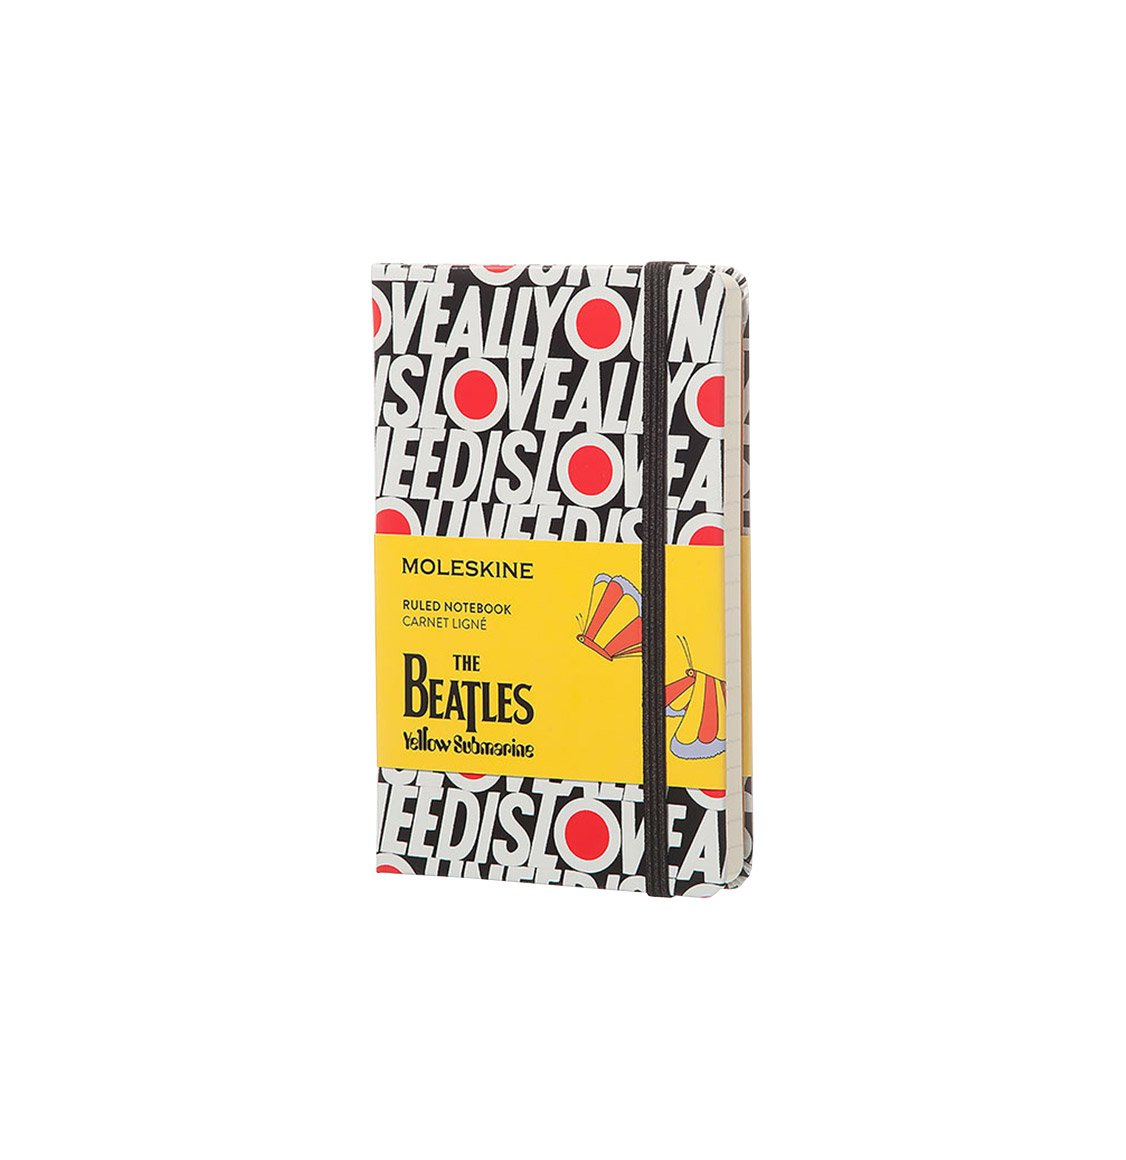 Moleskine The Beatles Limited Edition Pocket Ruled Notebook Black – All You Need Is Love